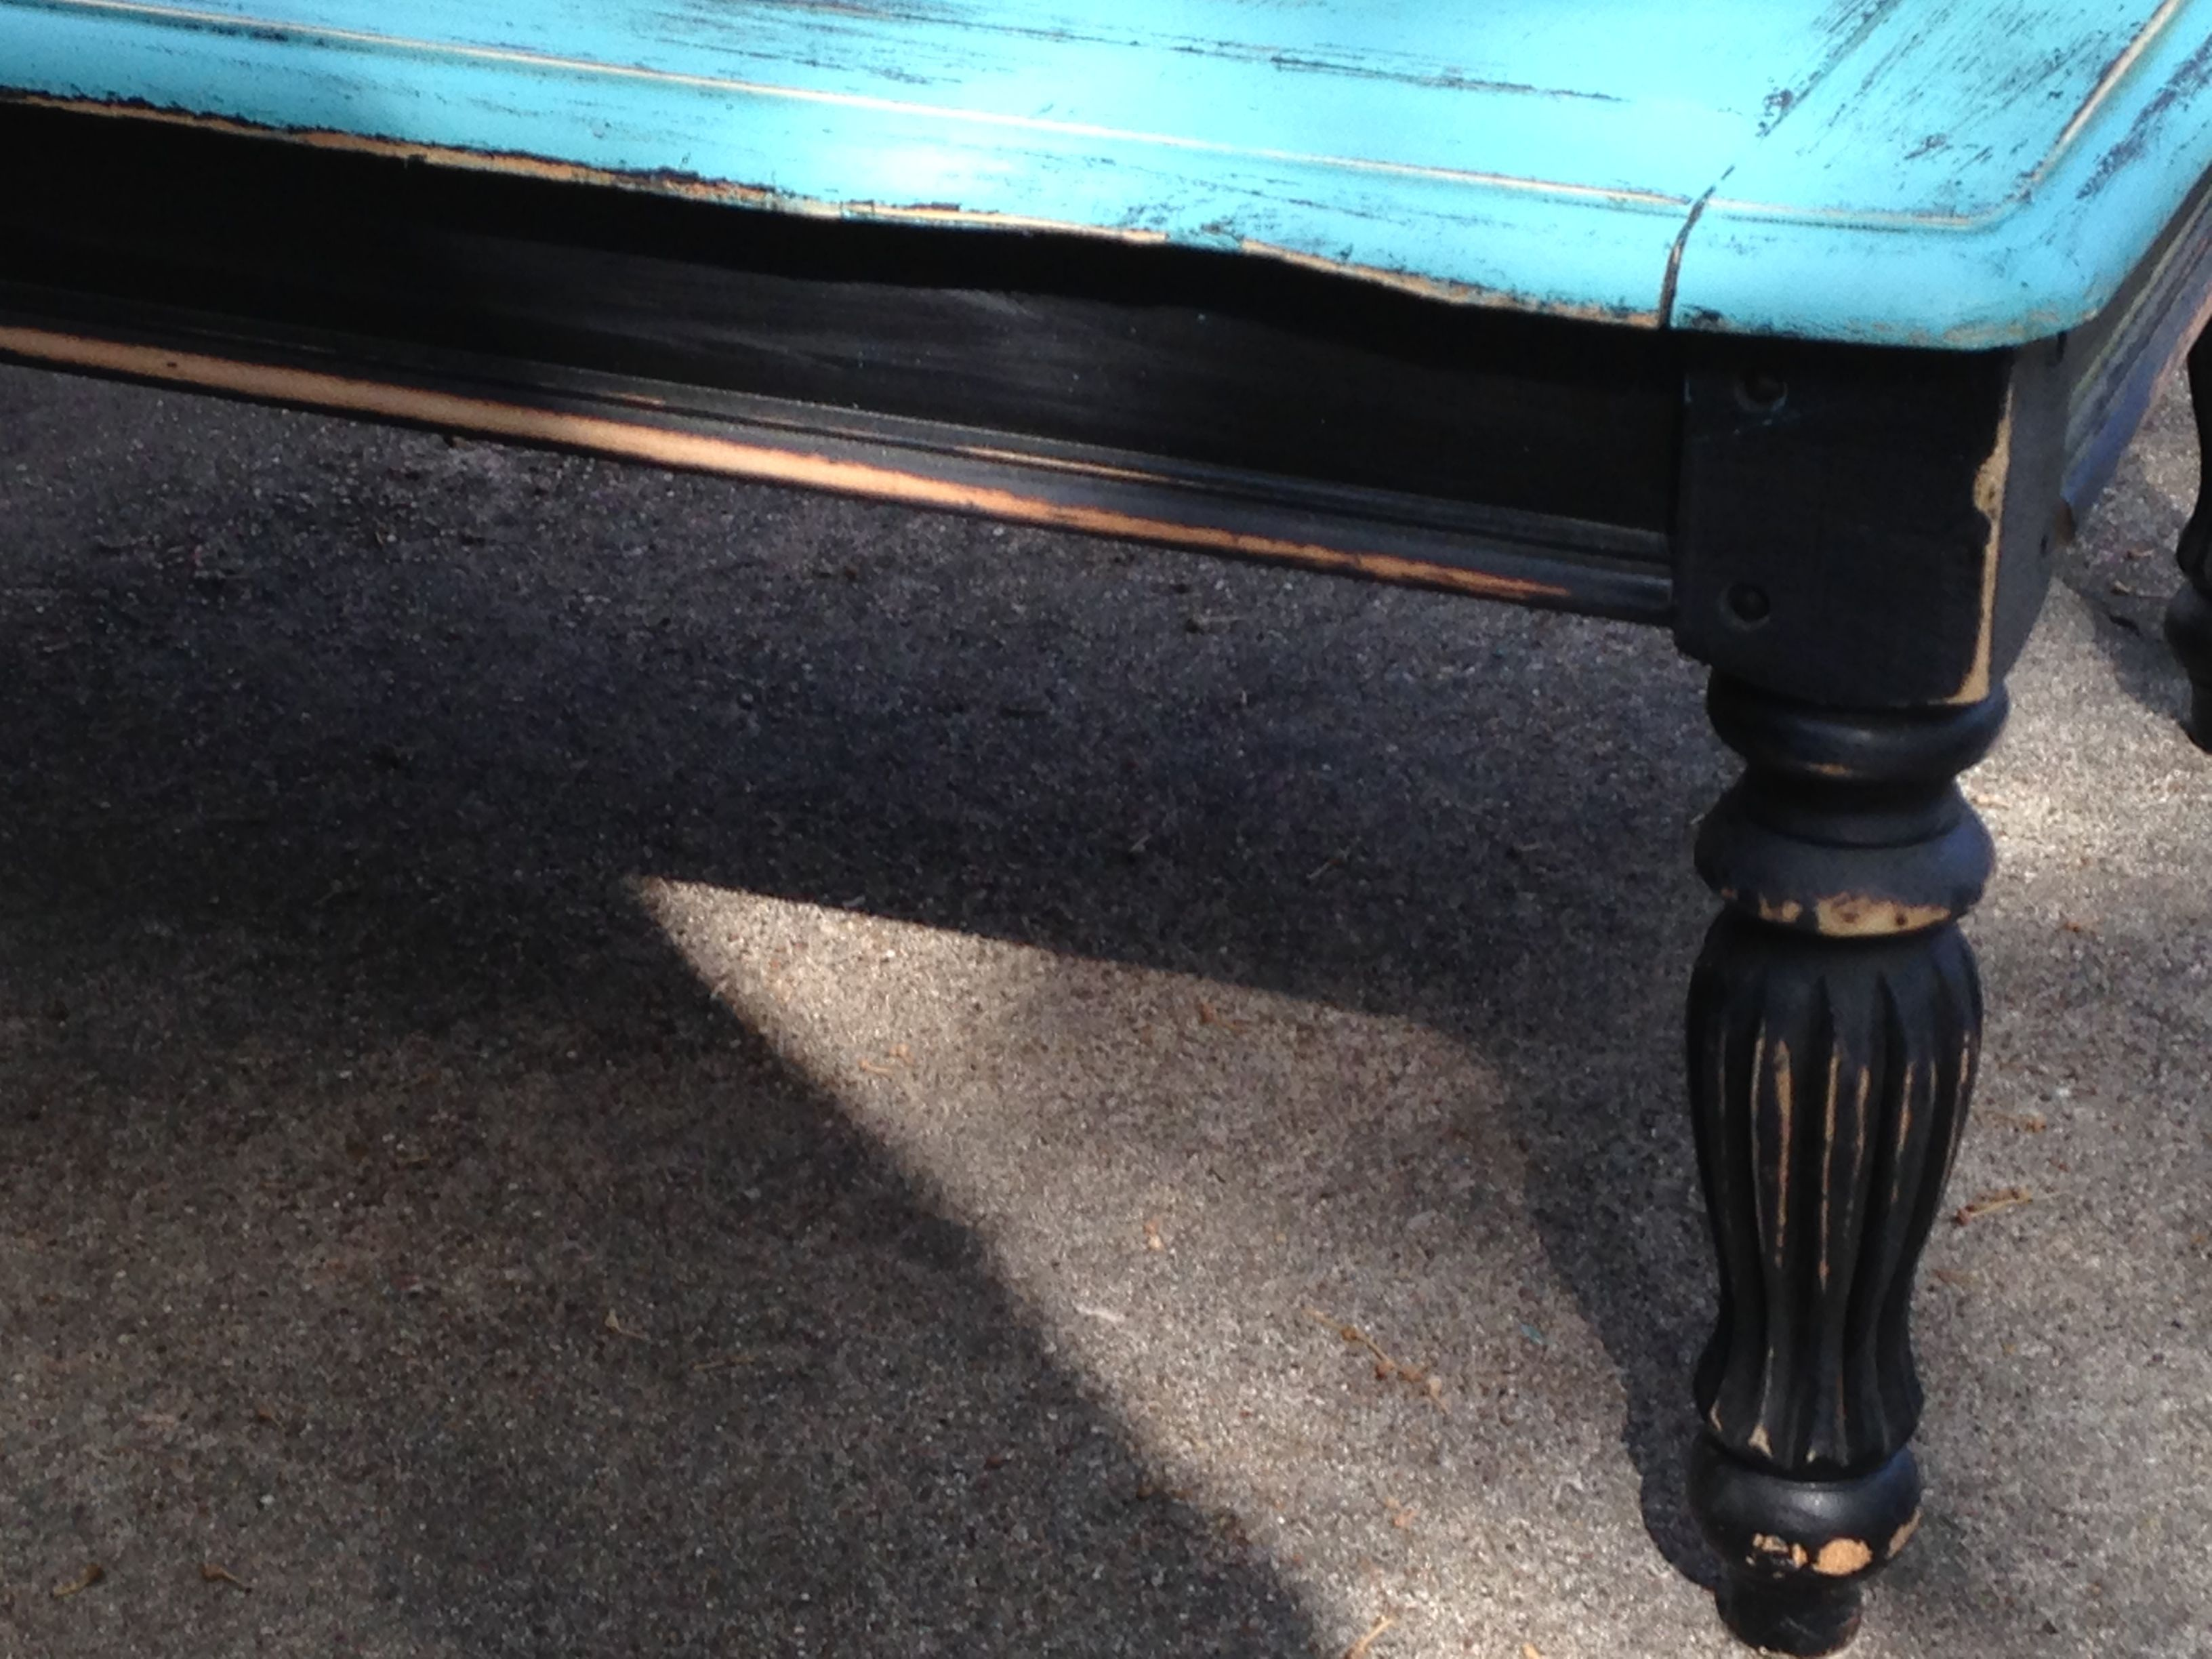 Here Is A Coffee Table With A Turquoise Top And Black Legs That Is